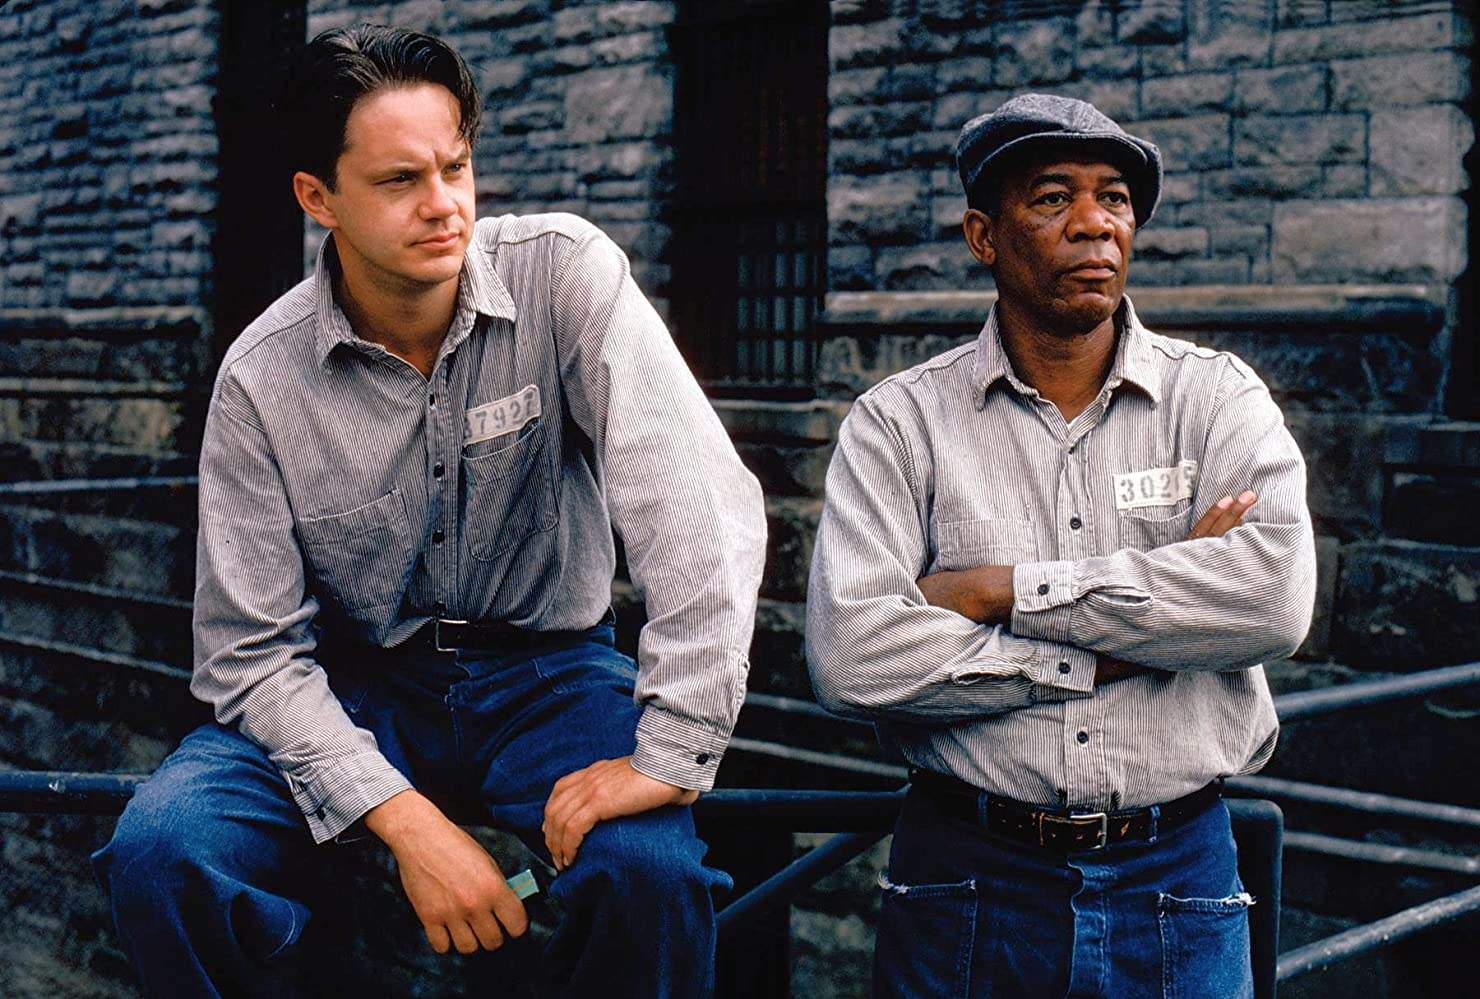 MUSE Film Club - The Shawshank Redemption